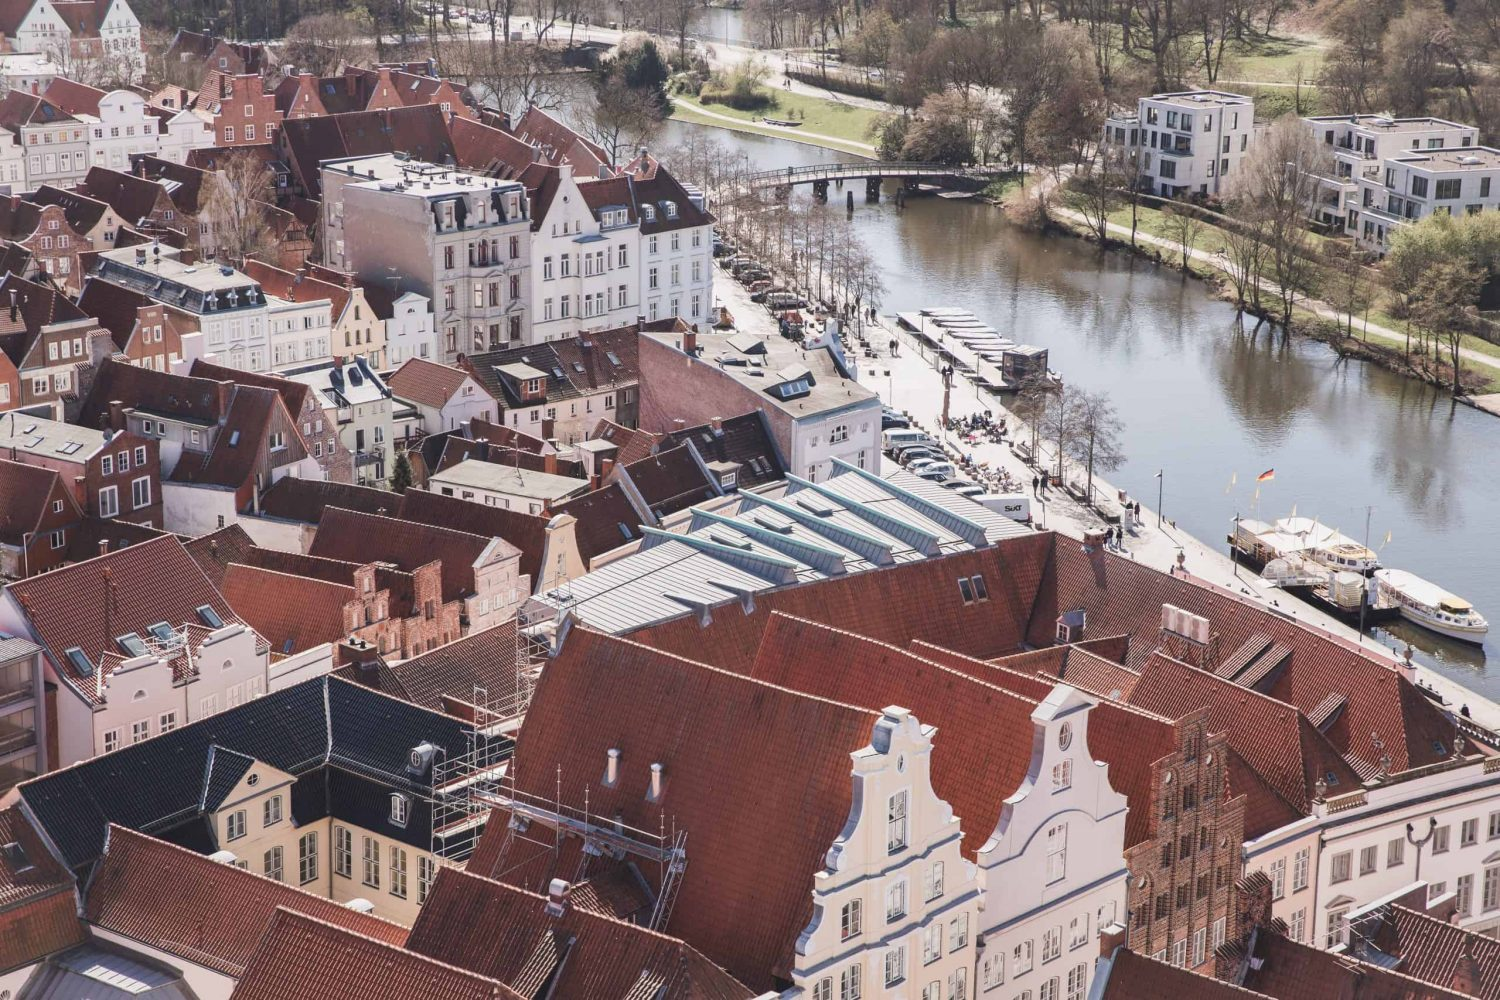 View of part of Lübeck Aldstadt, or Old Town, from the observation deck at St. Peter's Church.